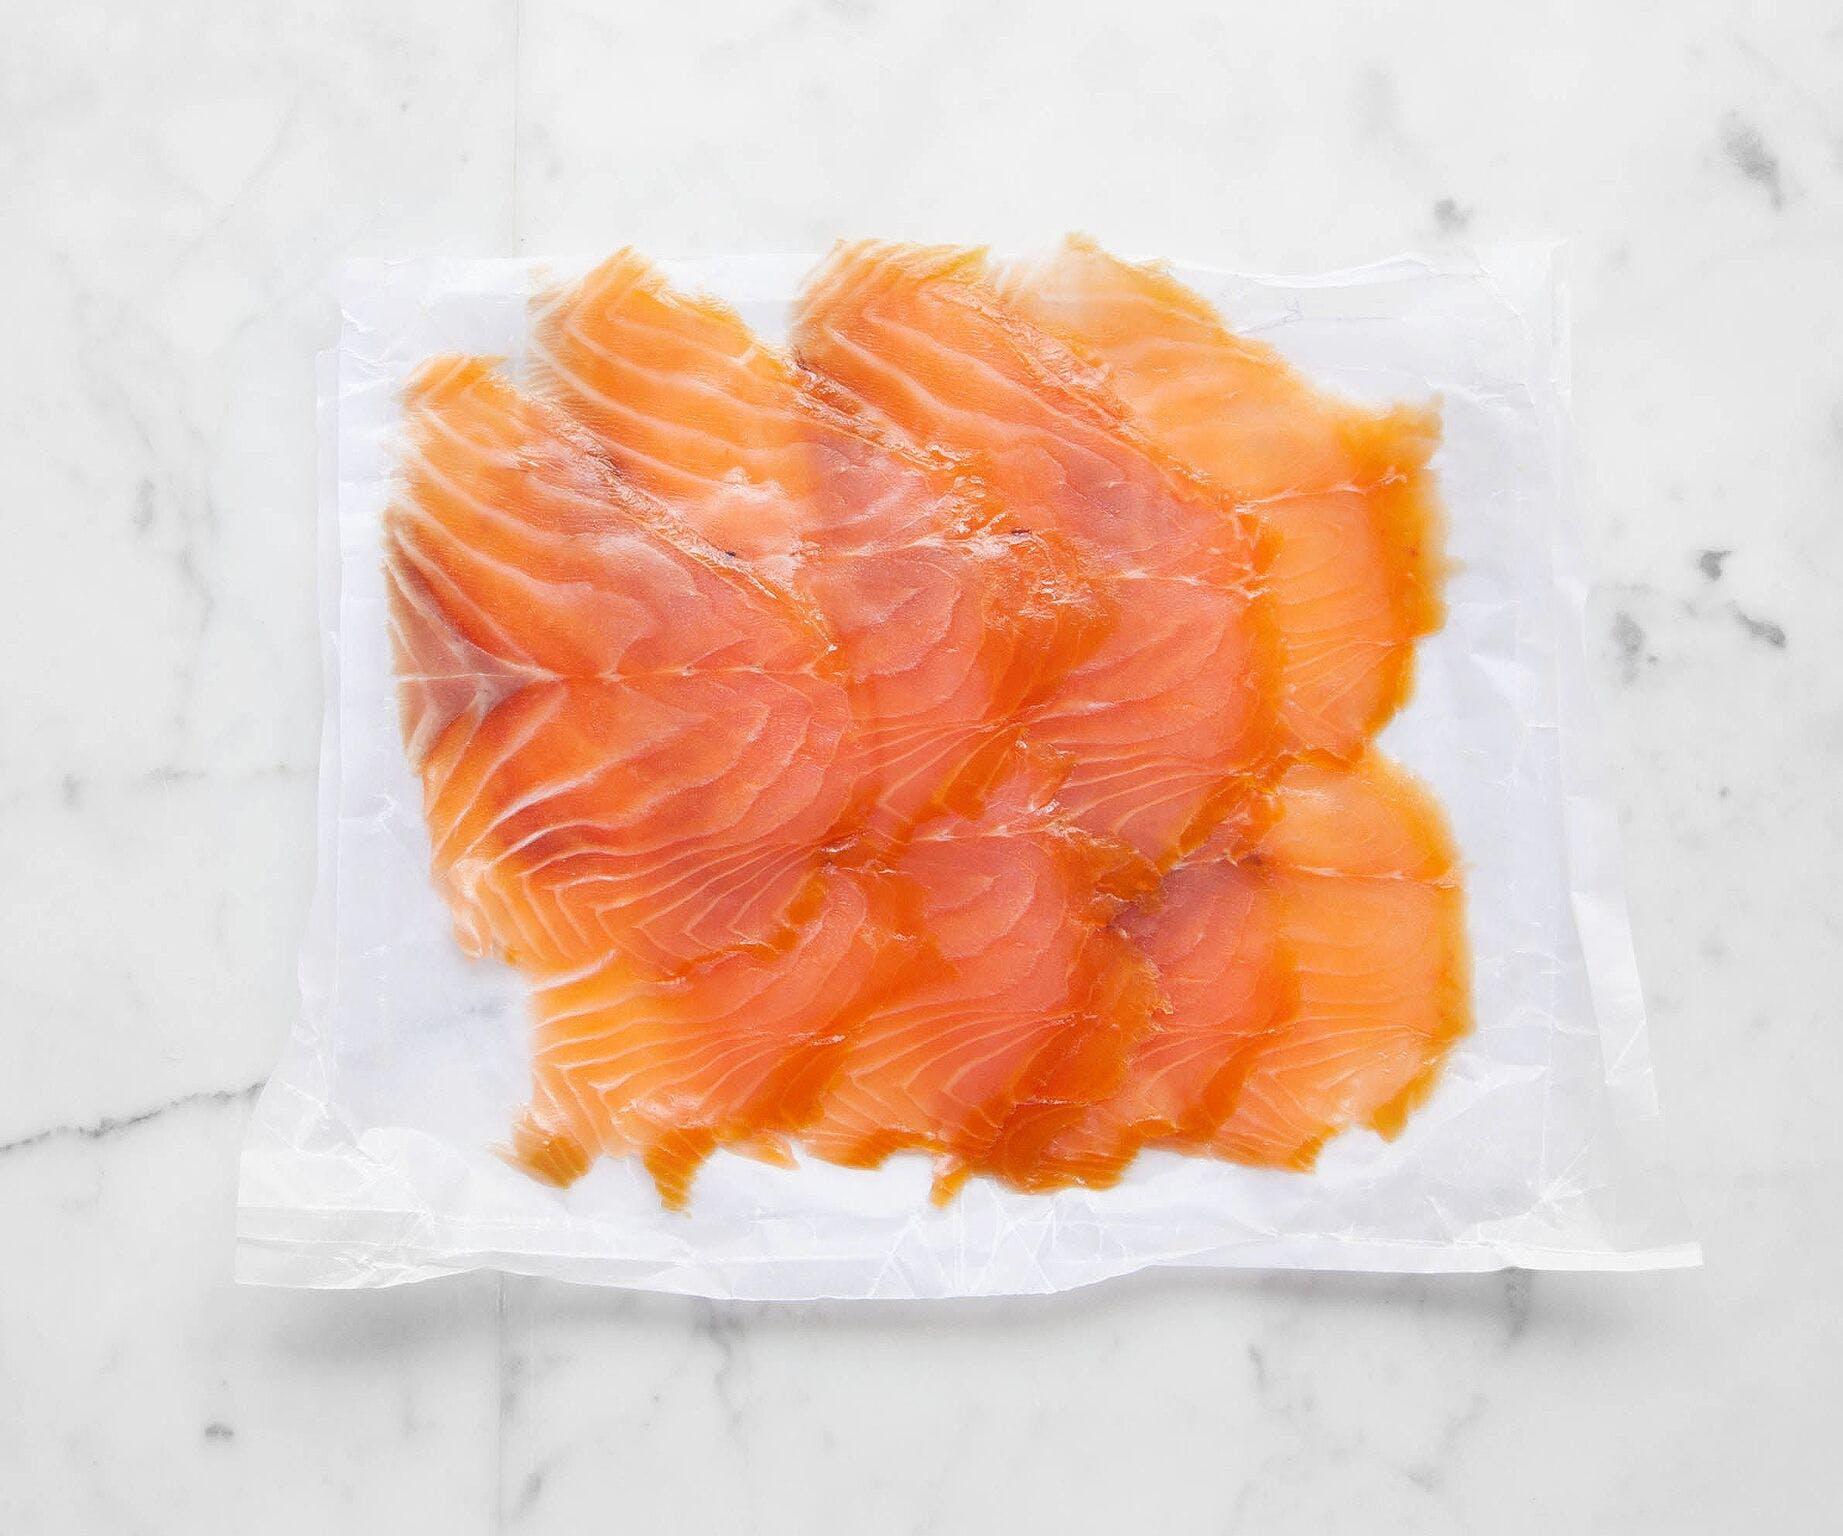 Sliced Smoked Trout